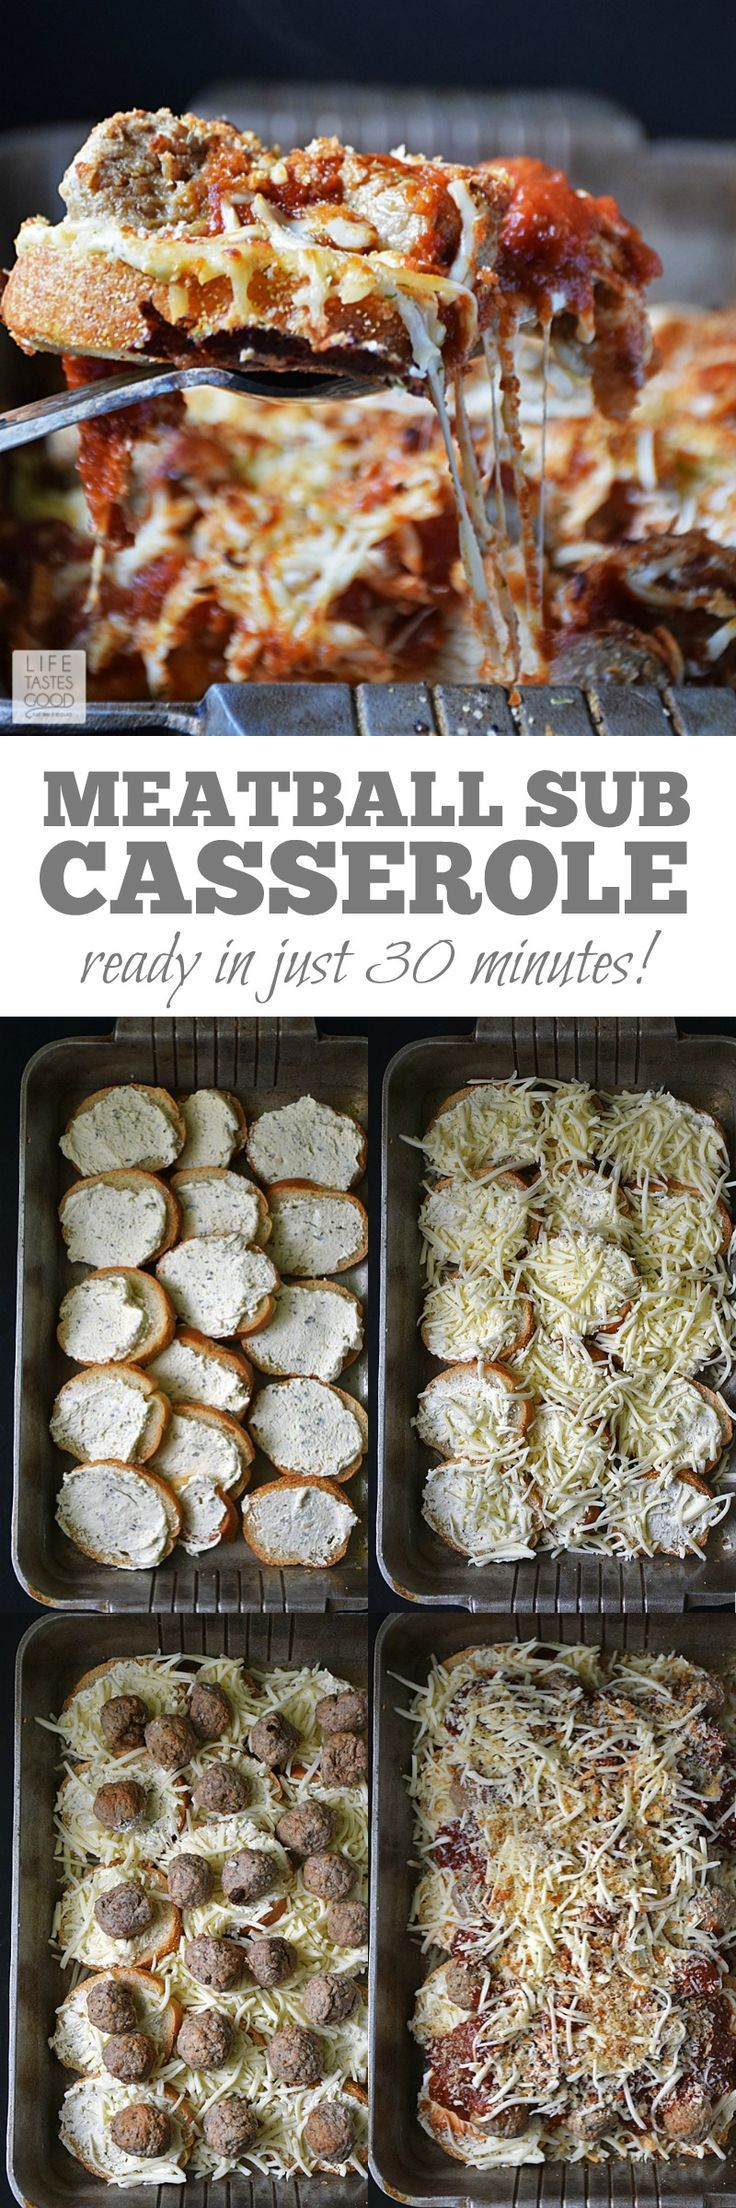 Easy to make, saucy, and cheesy, this Meatball Sub Casserole   by Life Tastes Good is a family favorite dinner that's on the table in just 30 minutes! #LTGrecipes